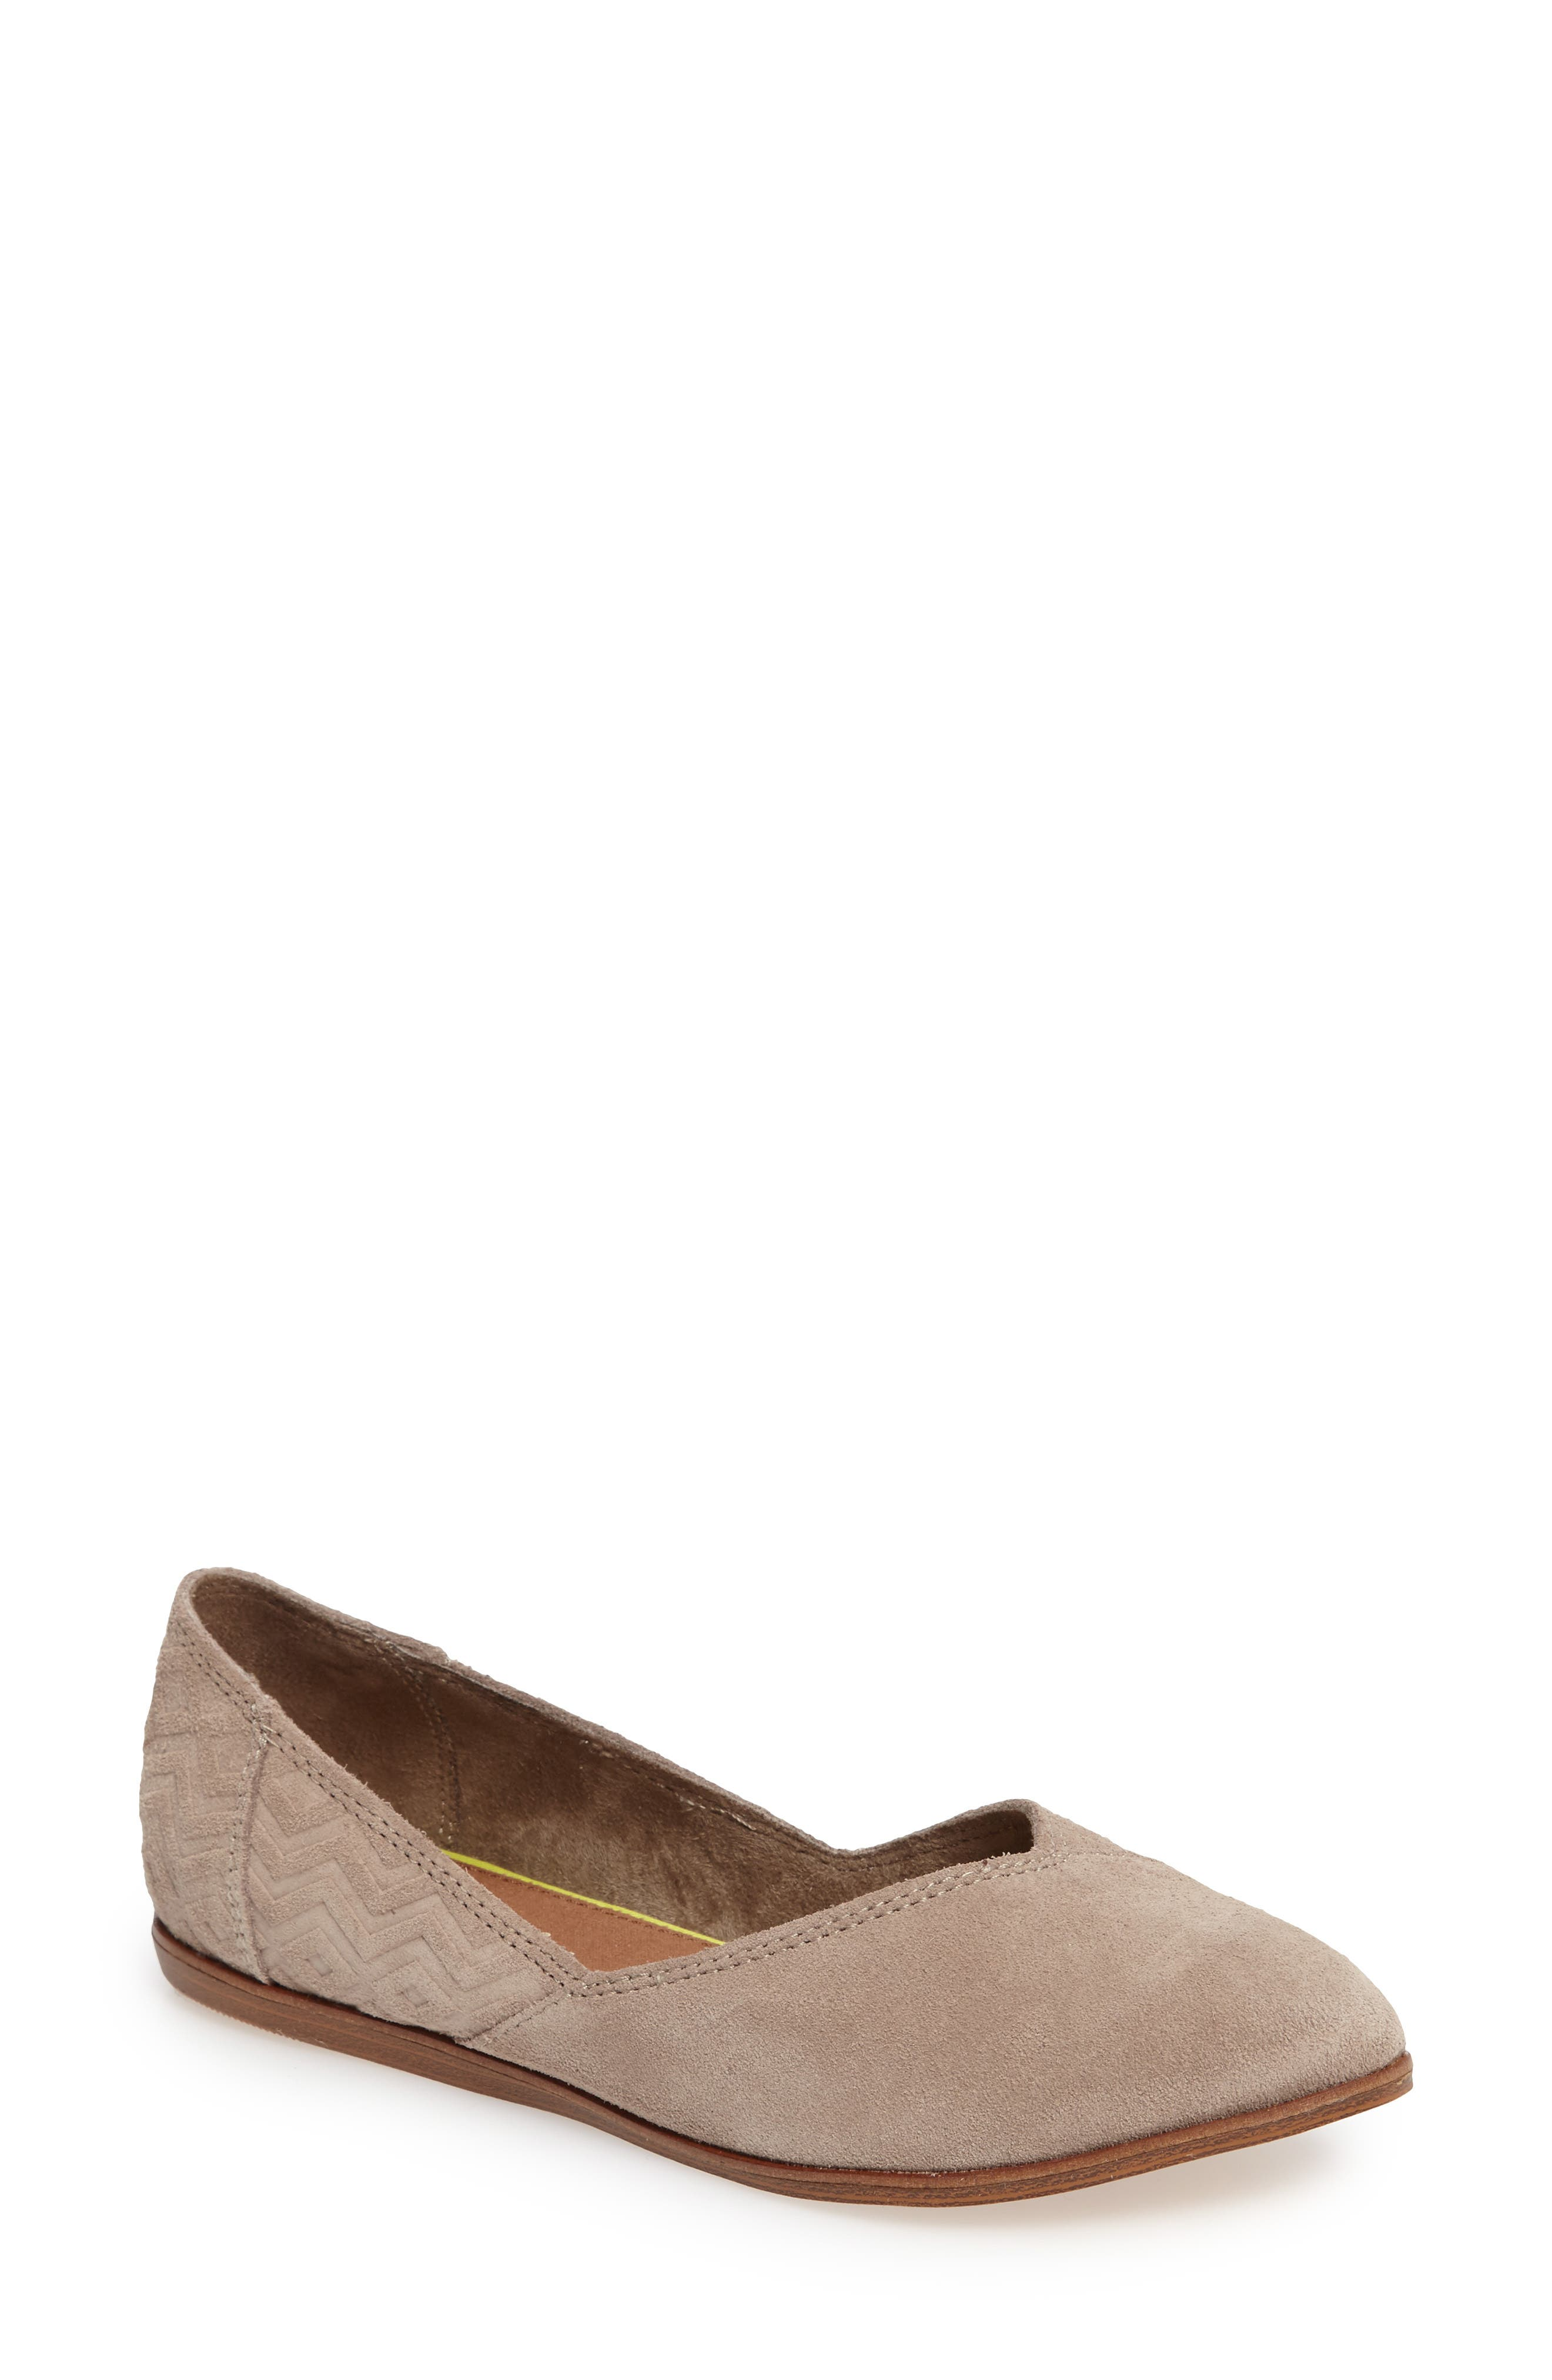 Alternate Image 1 Selected - TOMS Jutti Flat (Women)